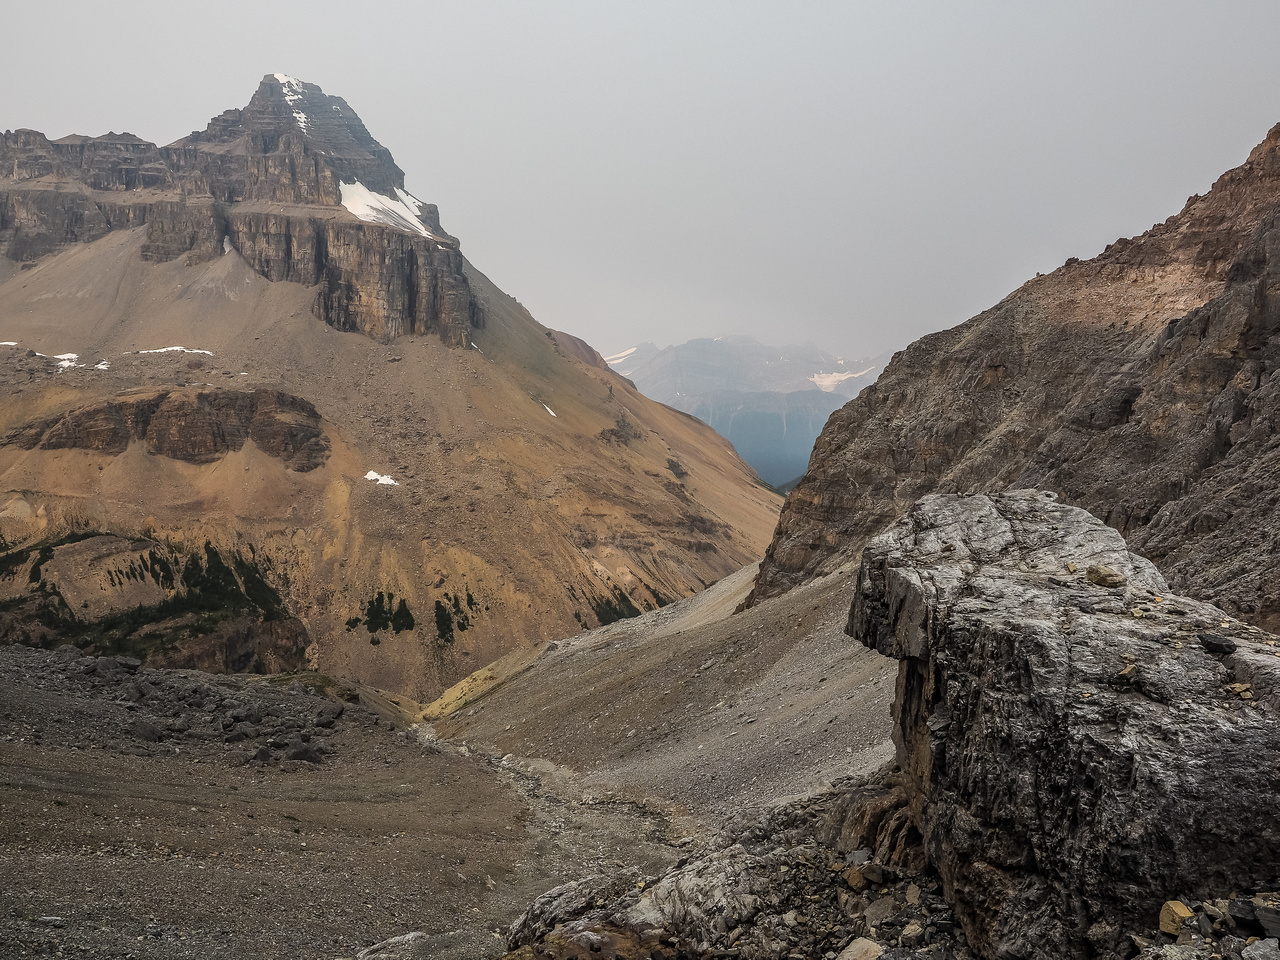 Looking back down the access gully towards Mount Weed - distant peaks now covered in smoke.